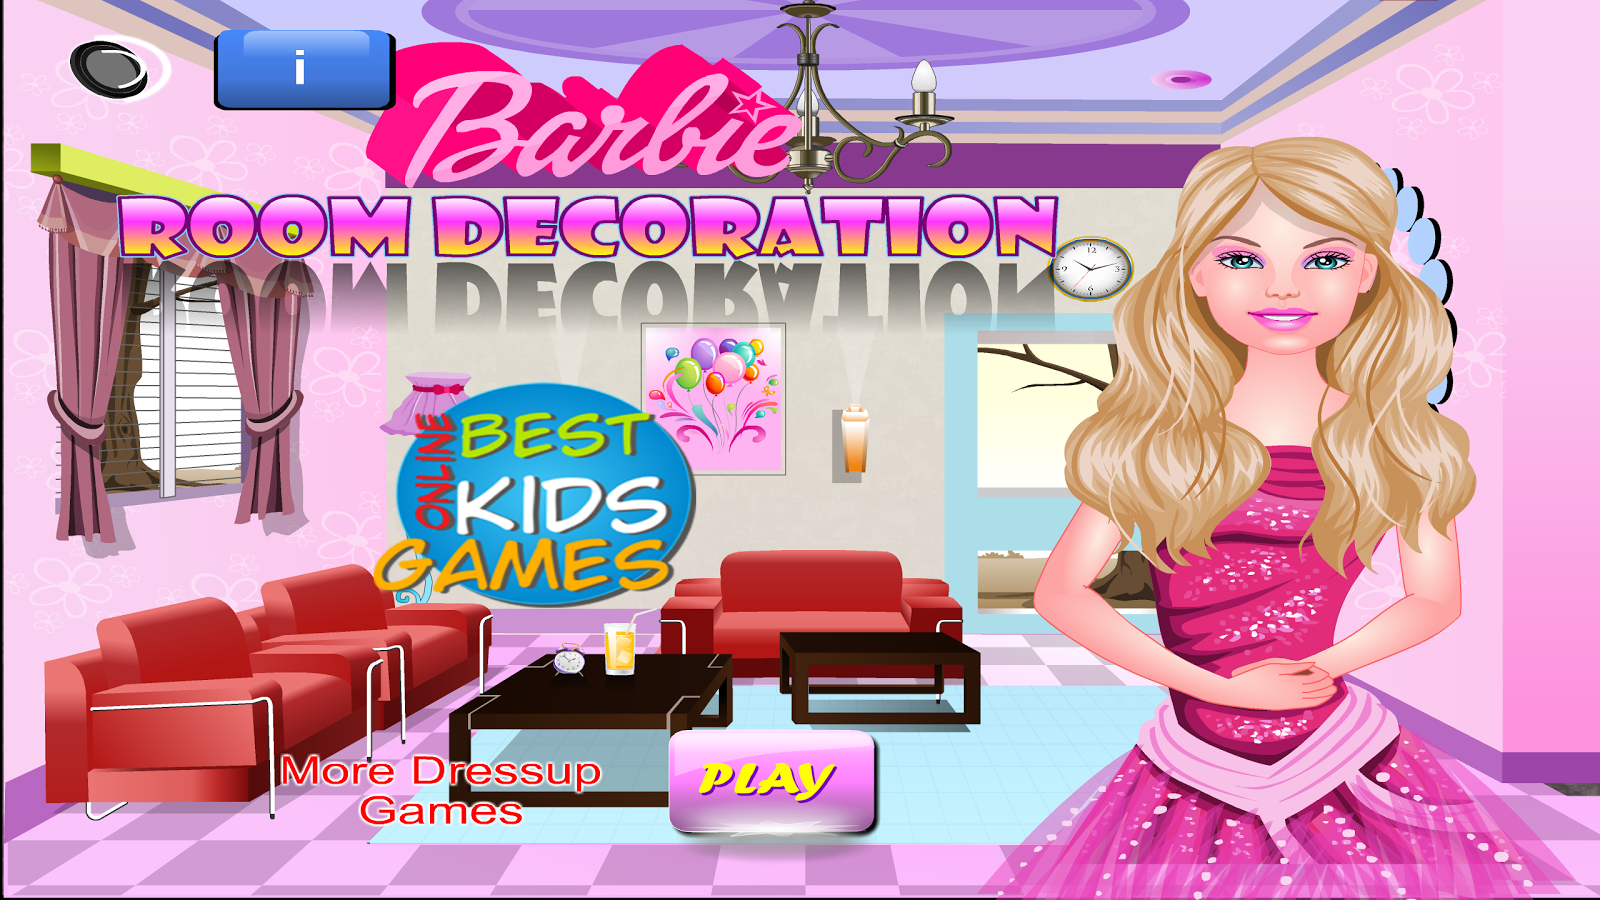 barbie room decoration - android apps on google play